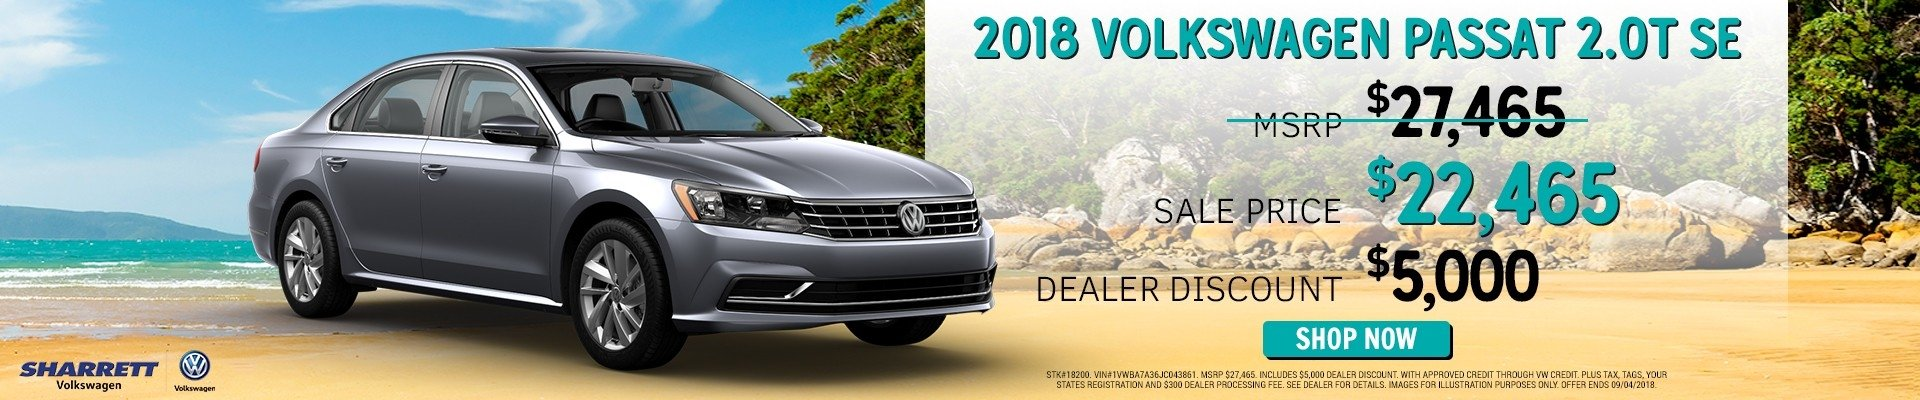 Save $5000 on a new 2018 VW Passat 2.0T SE | Sharrett Volkswagen